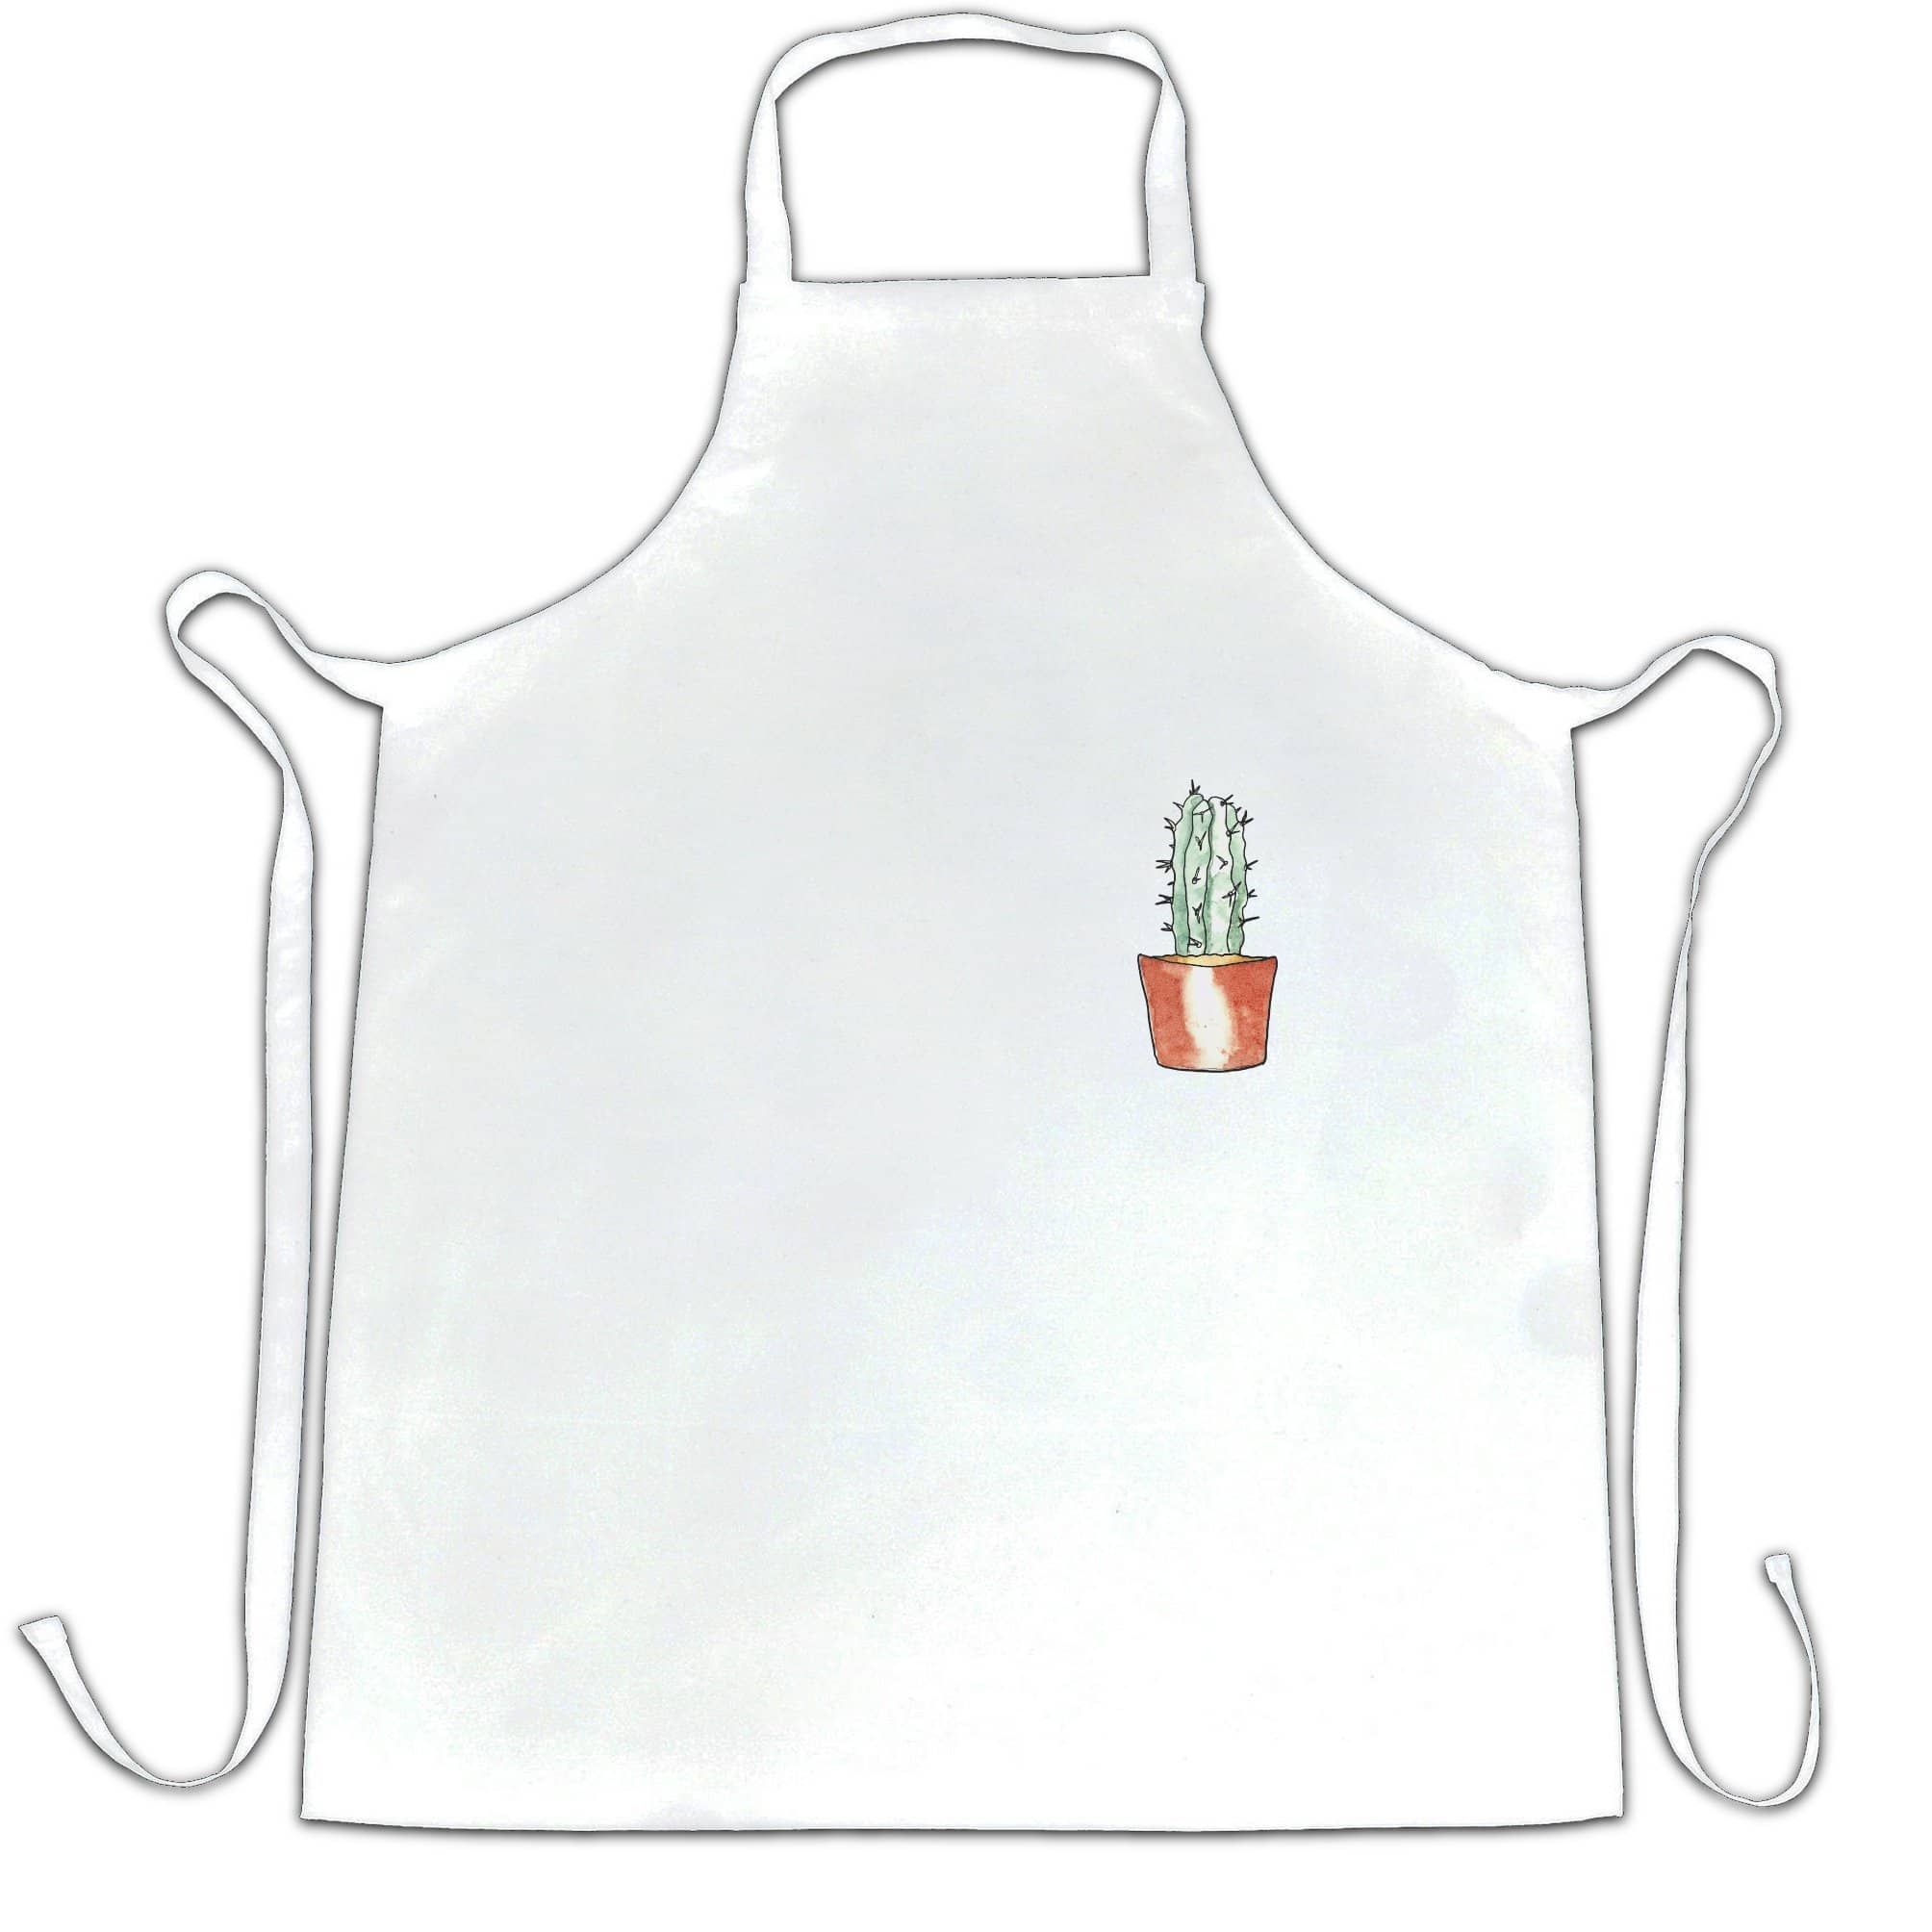 Cute Plant Chef's Apron Drawn Cactus Art Pocket Print